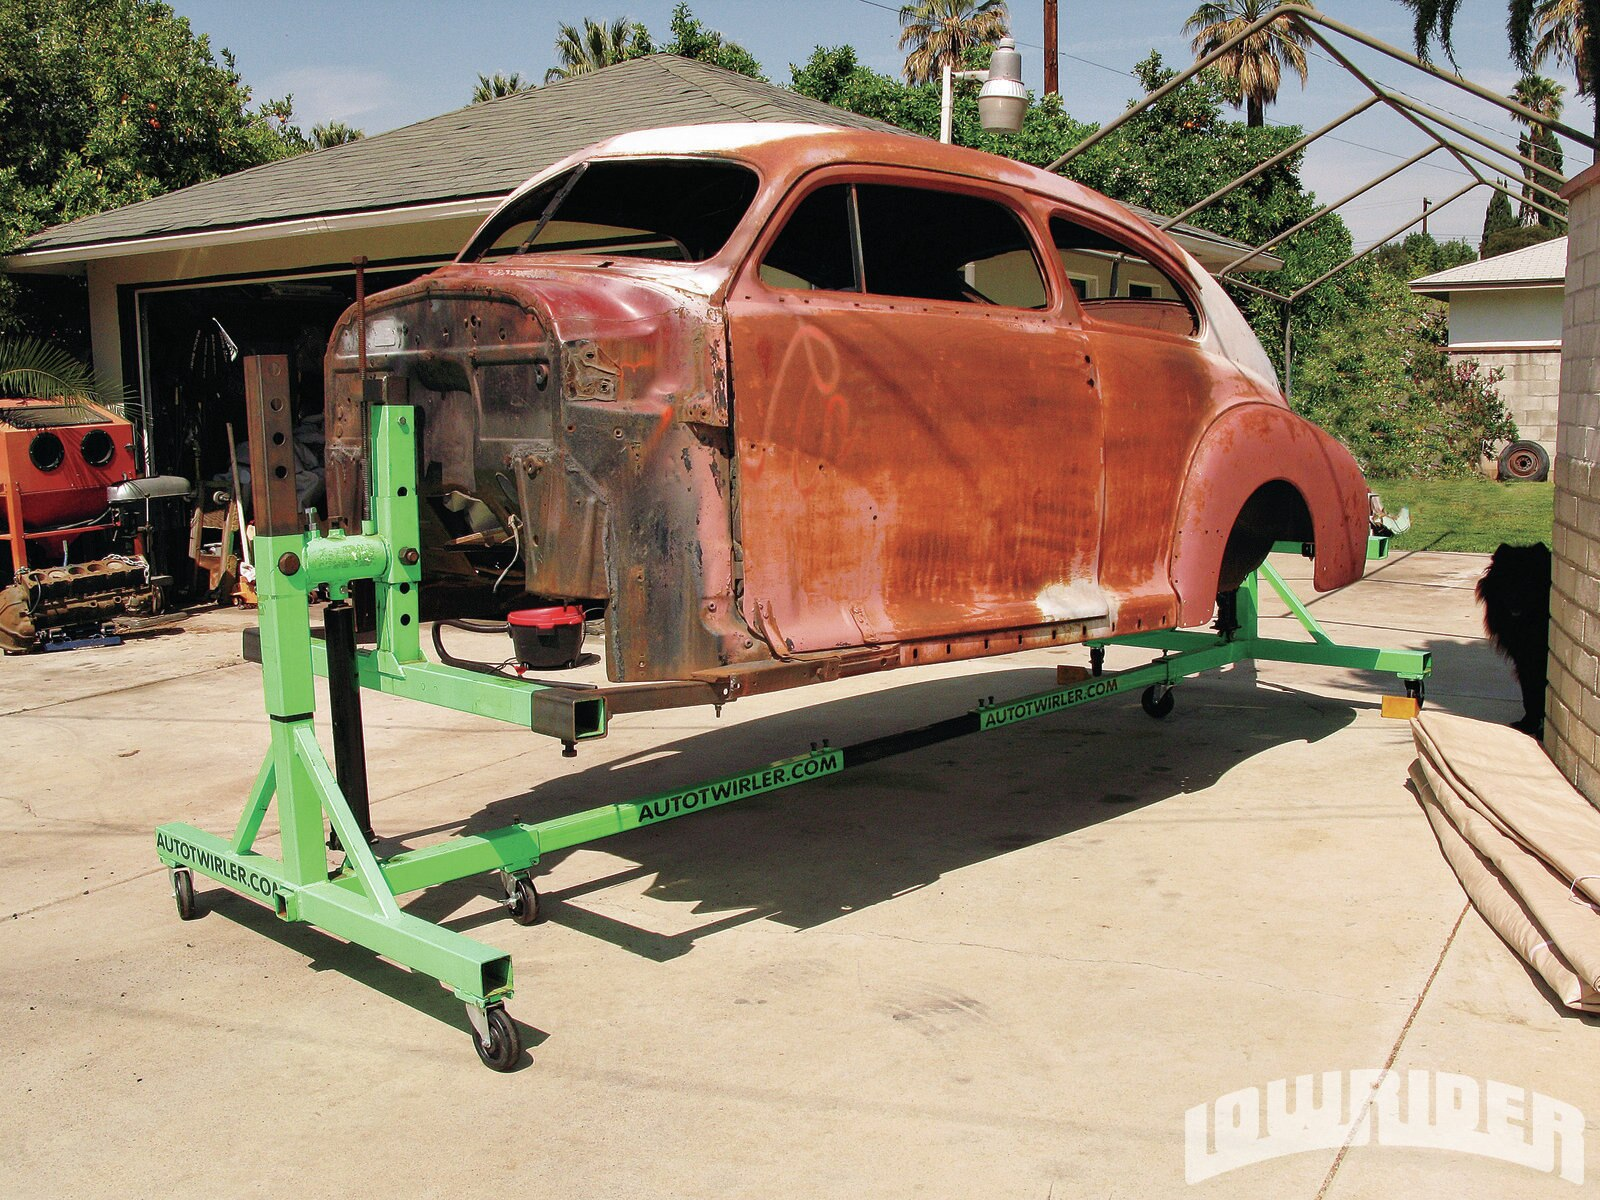 1208-lrmp-01-o-sheet-metal-repair-1947-chevrolet-fleetline-aero-sedan1